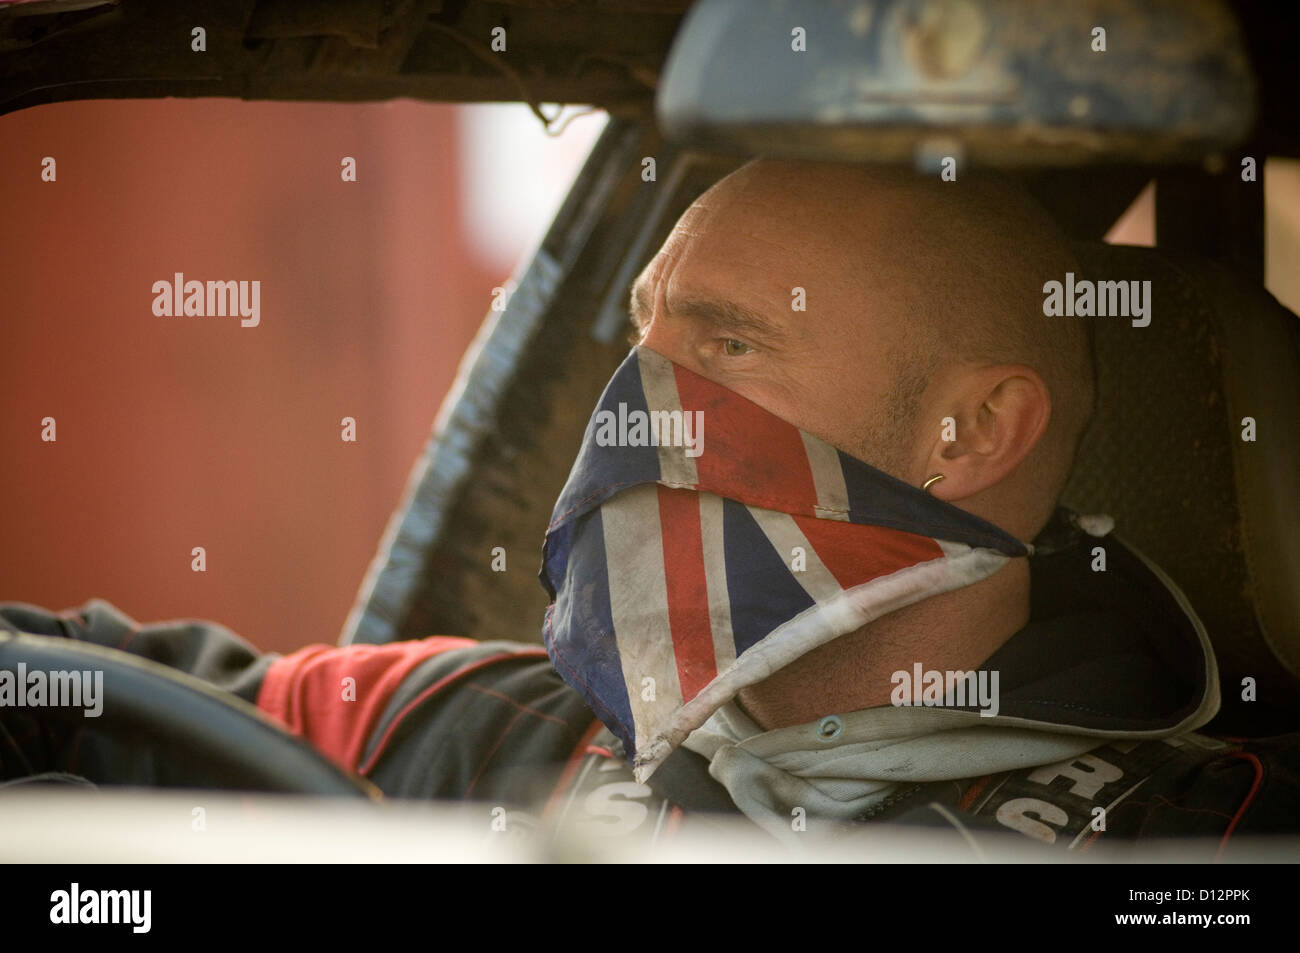 stock car racer before a race - Stock Image